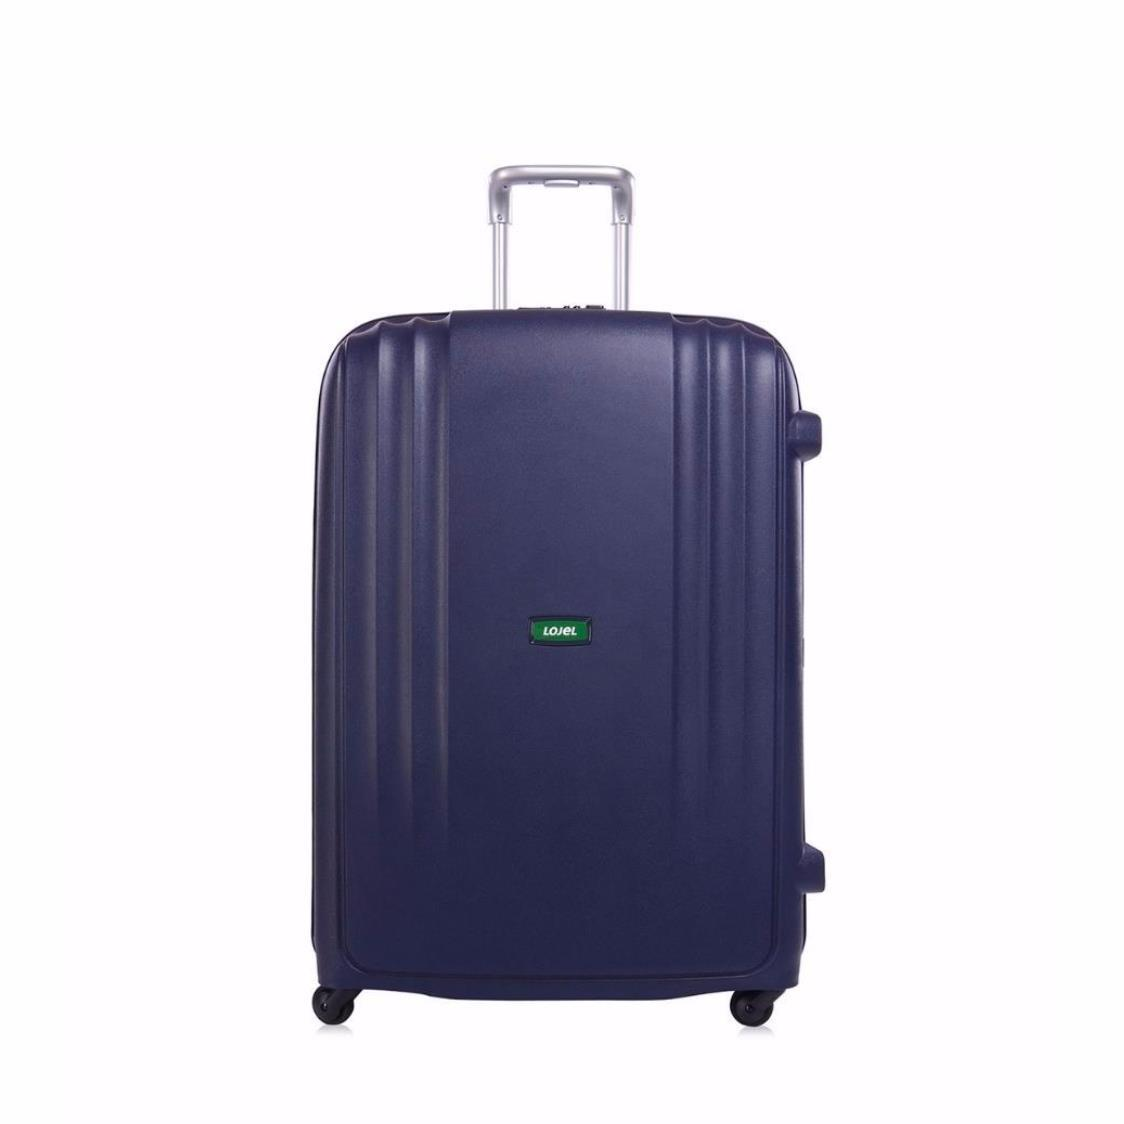 Streamline Luggage - Navy